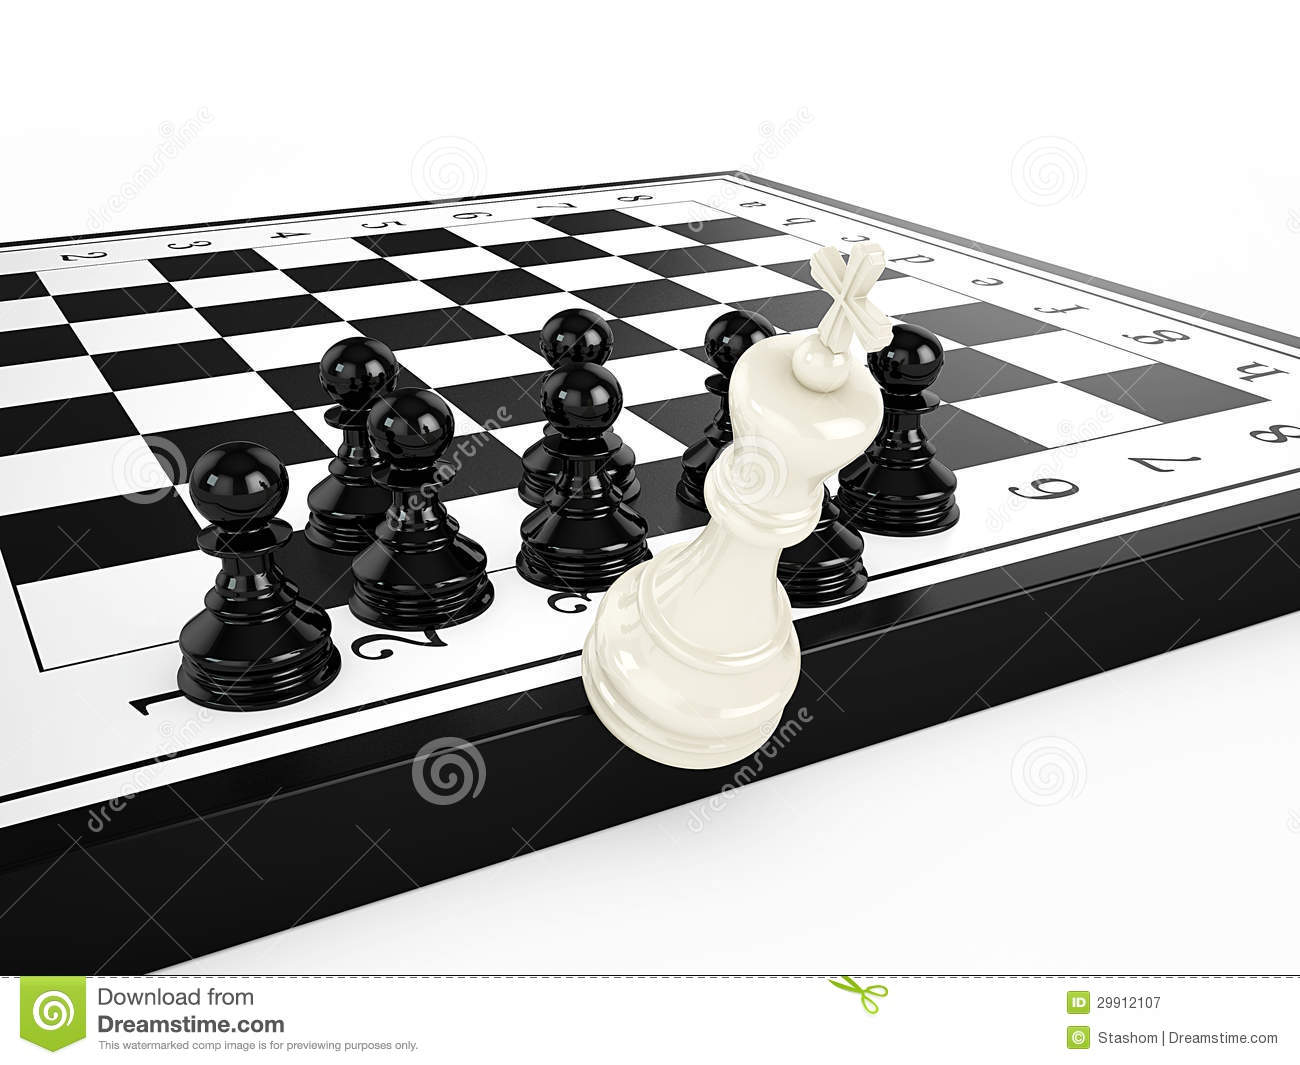 free illustration chessboard render - photo #17